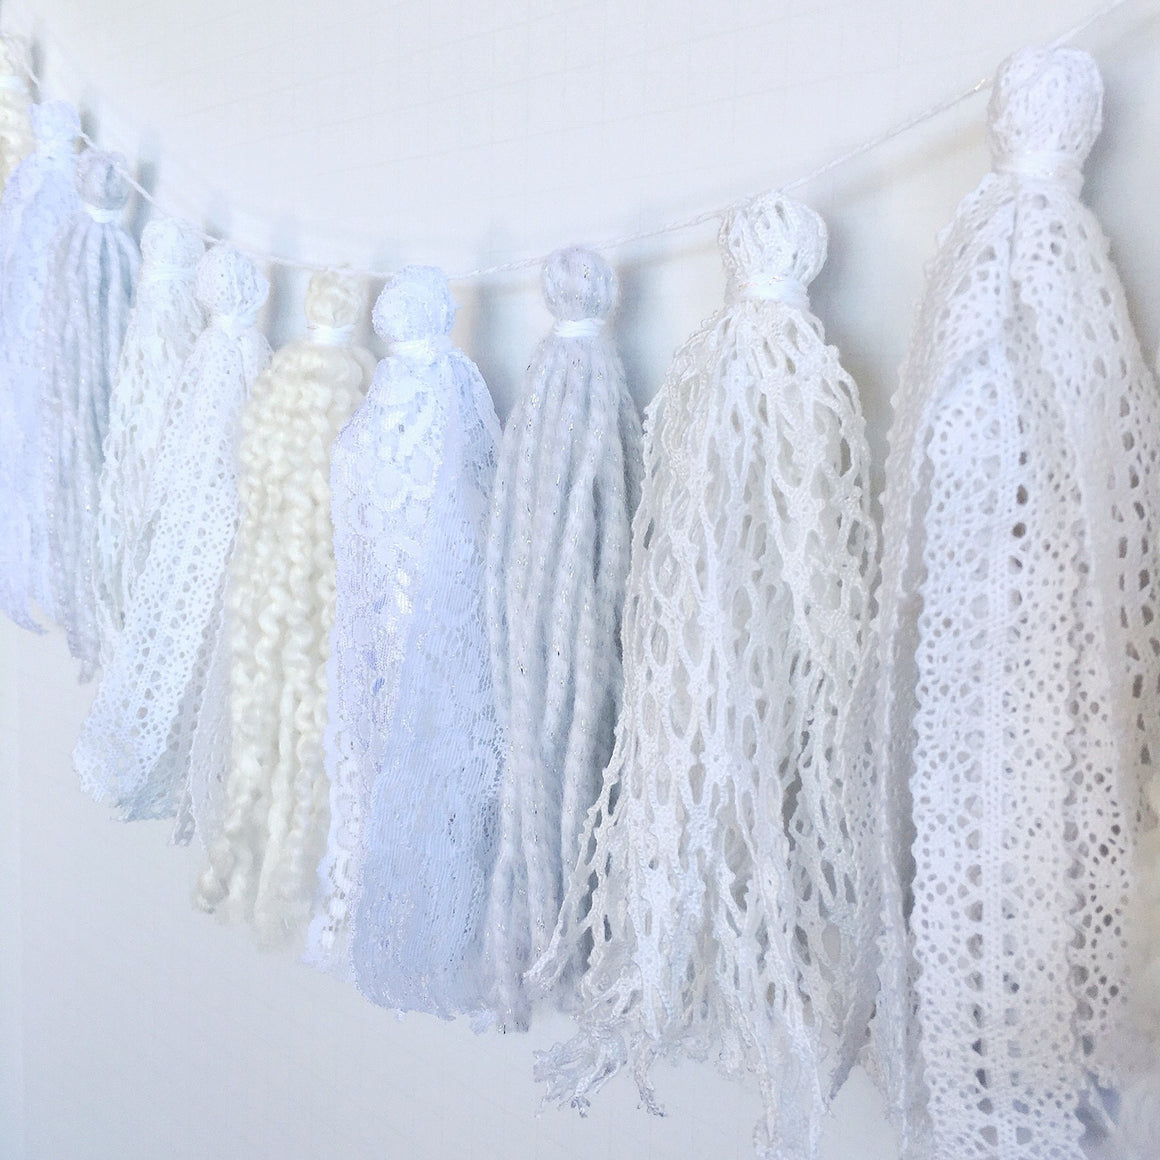 TASSEL GARLAND - FABRIC MIXED WHITEOUT